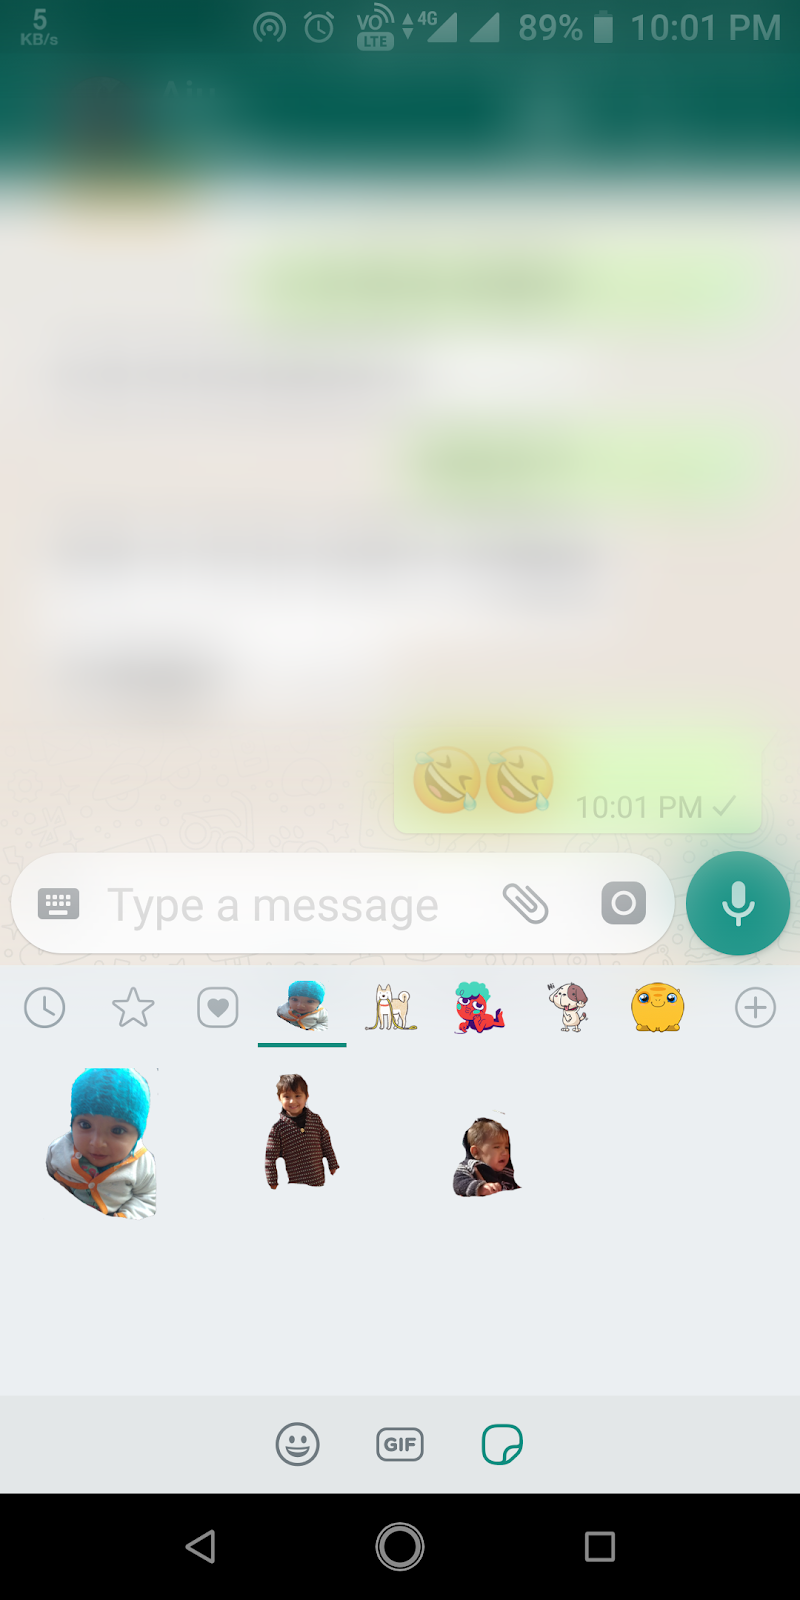 How to create own personal stickers on whatsapp